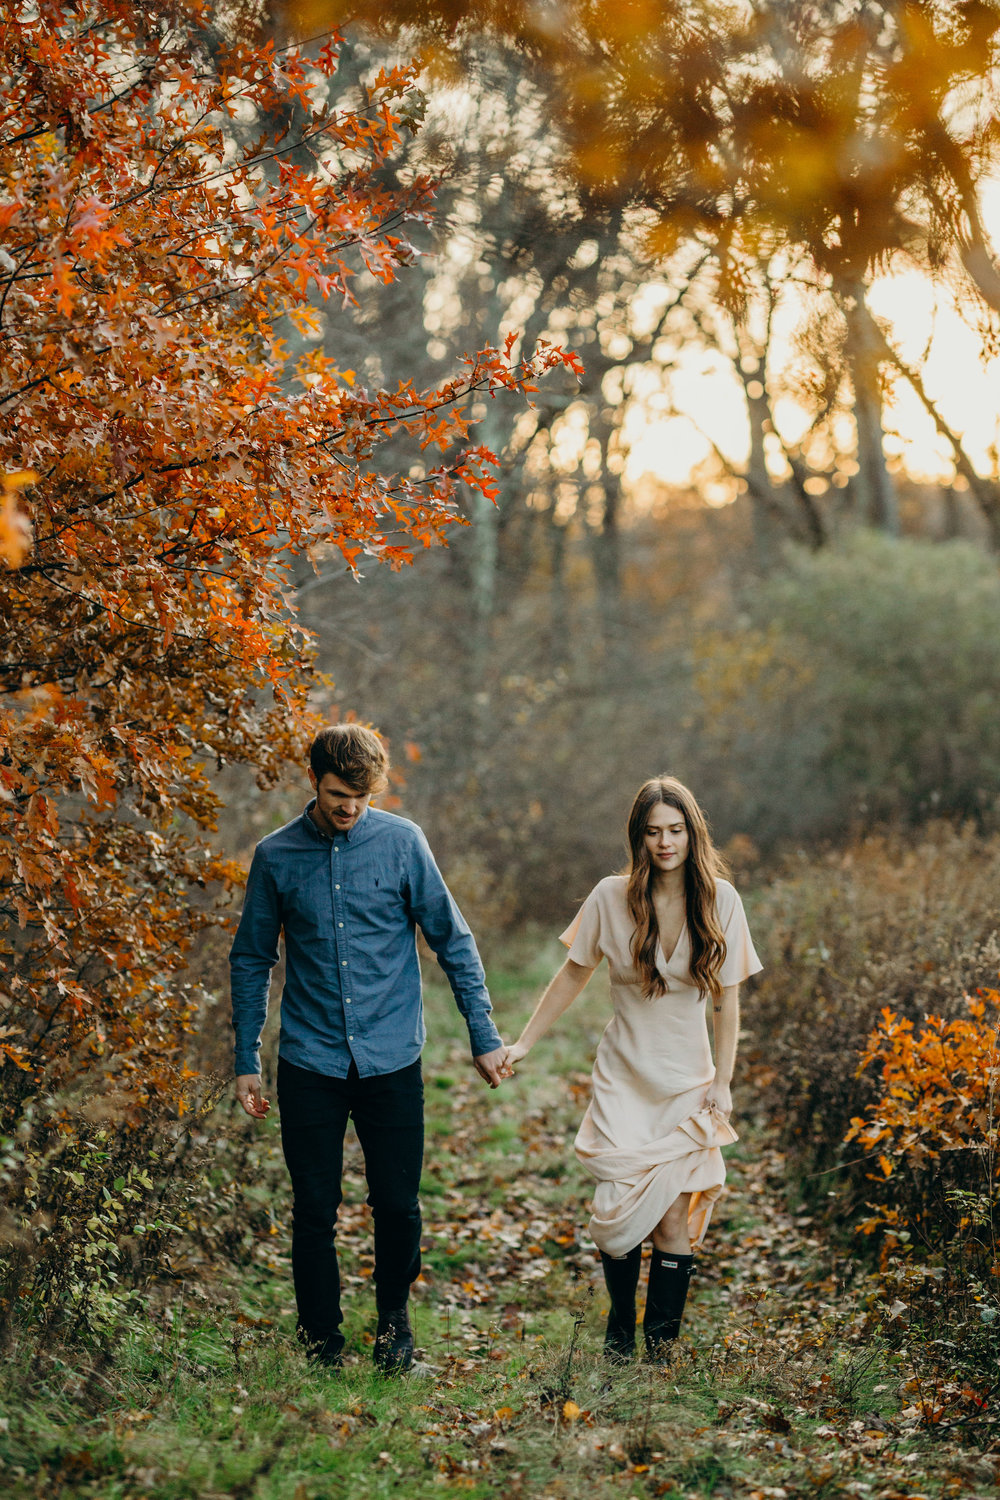 rustic-autumn-fall-north-northern-new-jersey-couple-portrait-elopement-photographer-150.jpg